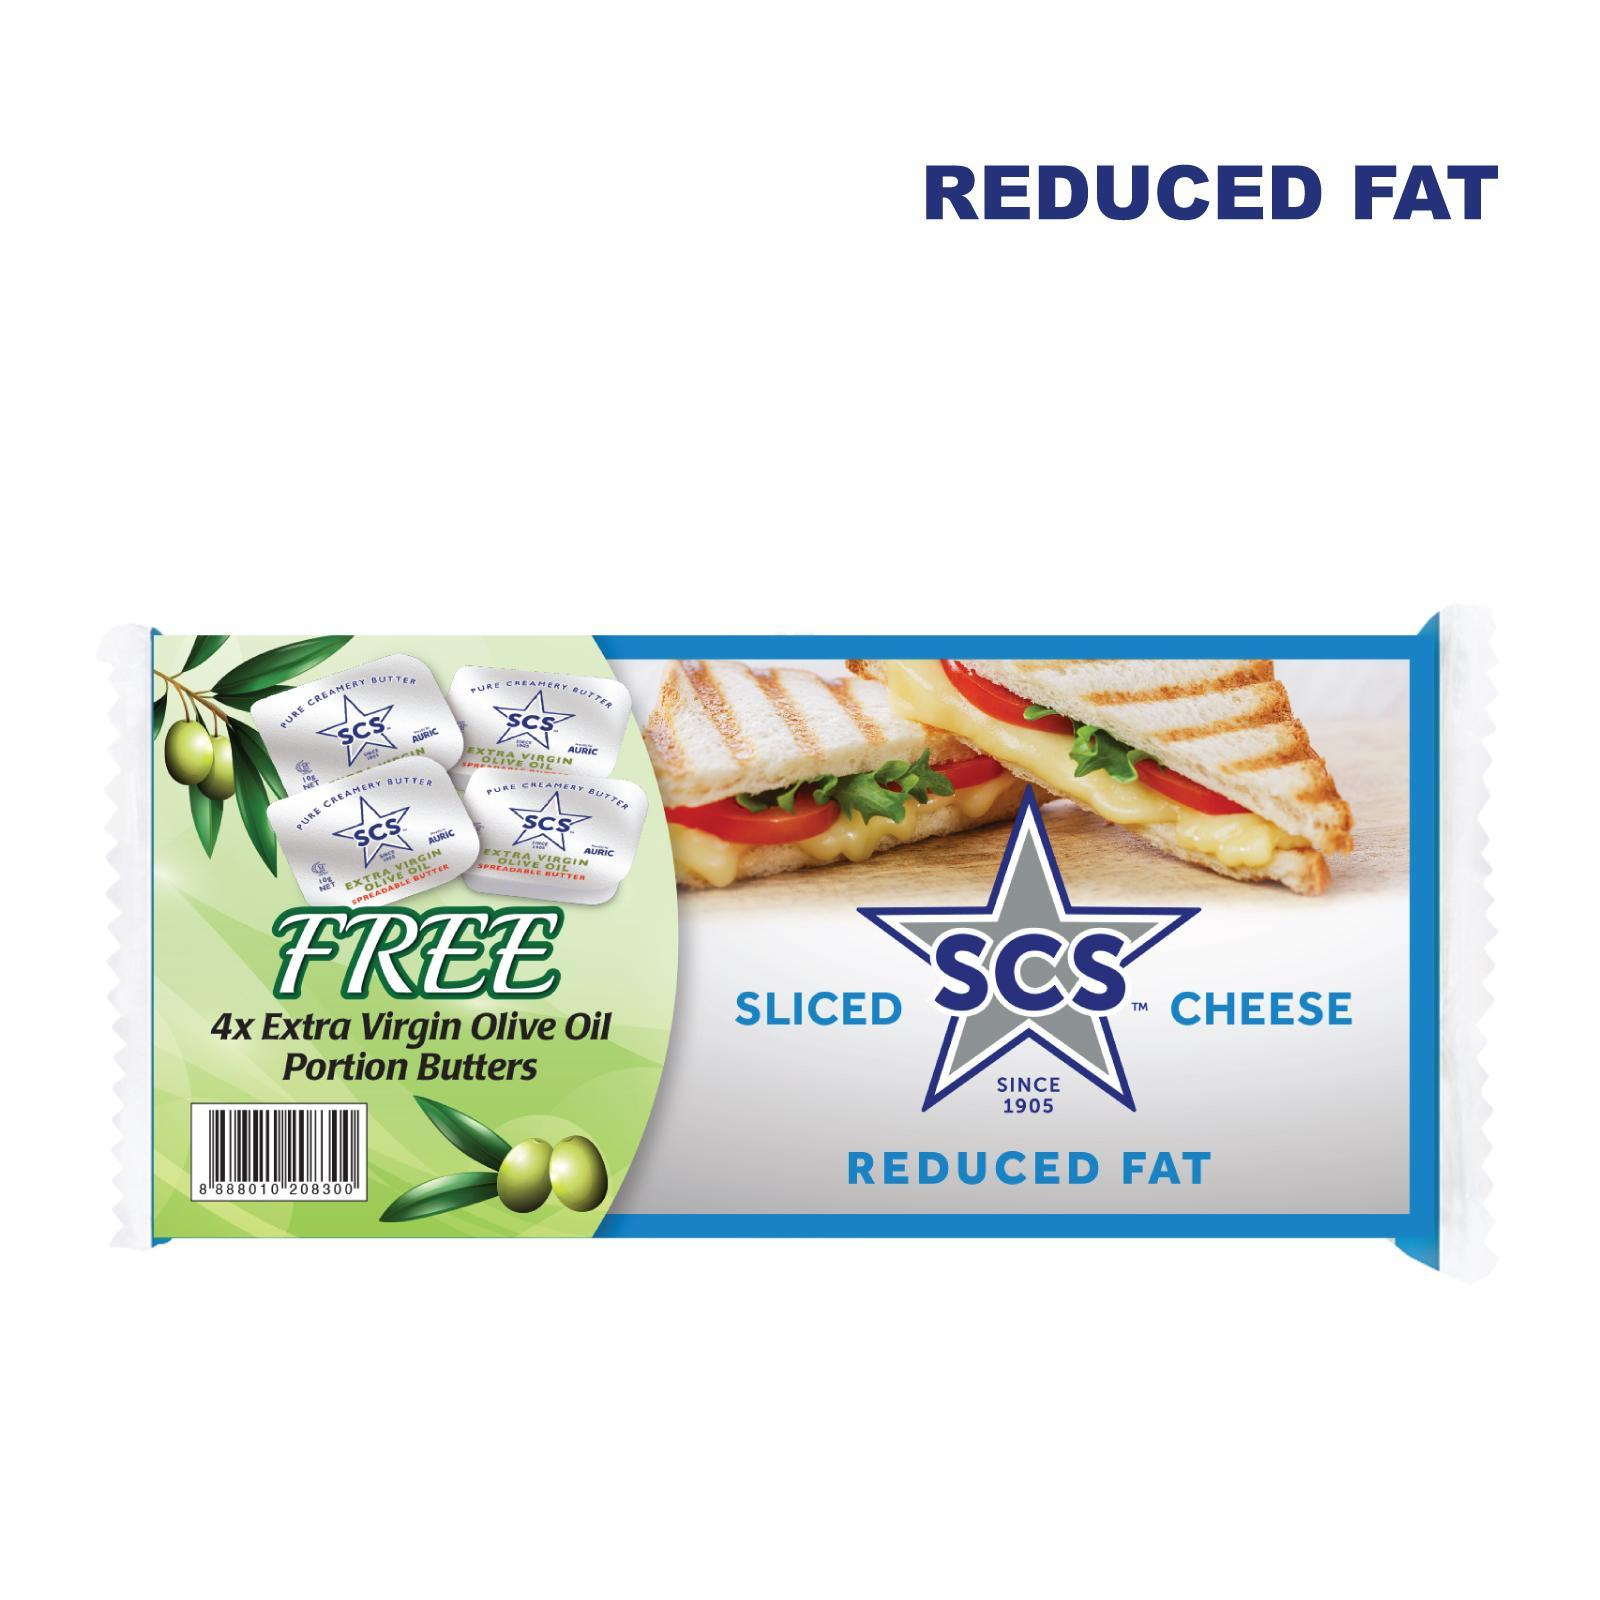 SCS Sliced Cheese Reduced Fat With Free 4 X Extra Virgin Olive Oil Portion Butters